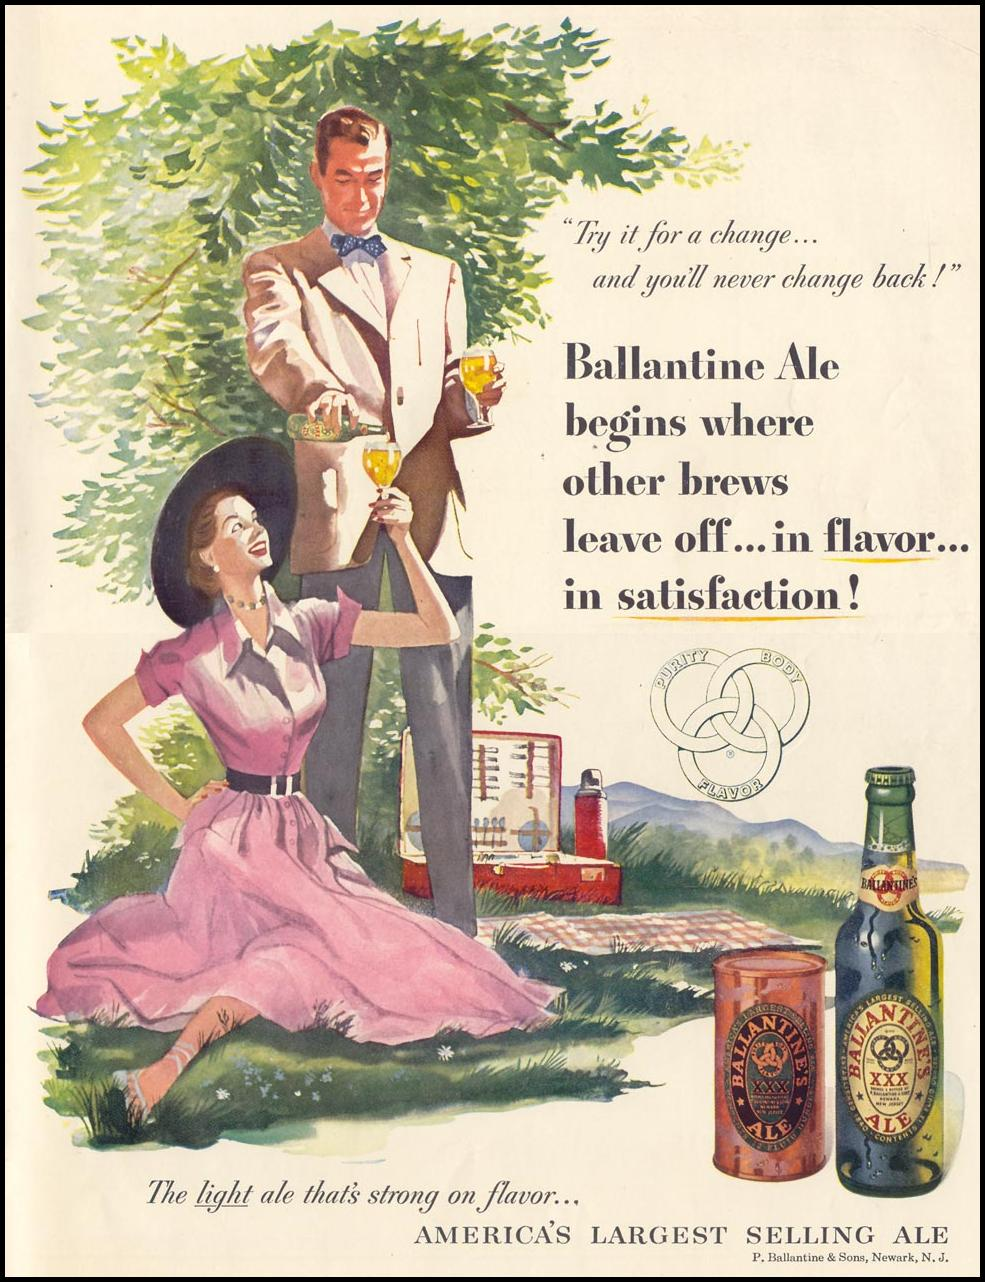 BALLANTINE ALE LIFE 07/30/1951 INSIDE BACK